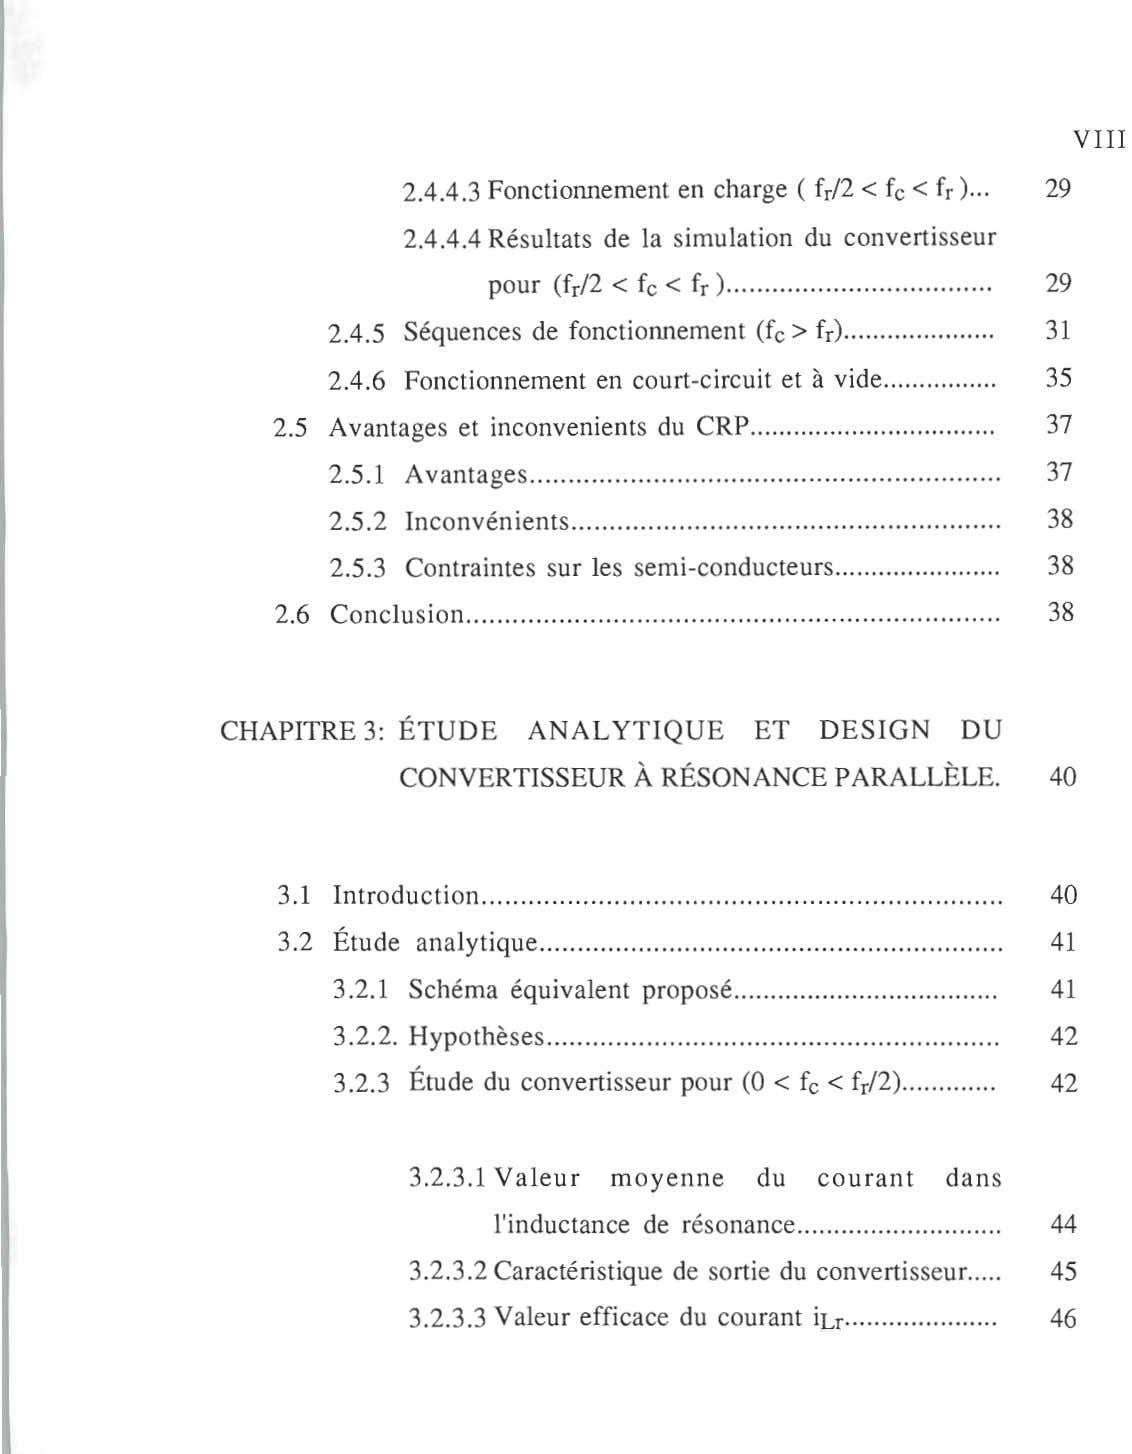 VIII 2.4.4.3 Fonctionnement en charge ( f r /2 < fe < fr ) 29